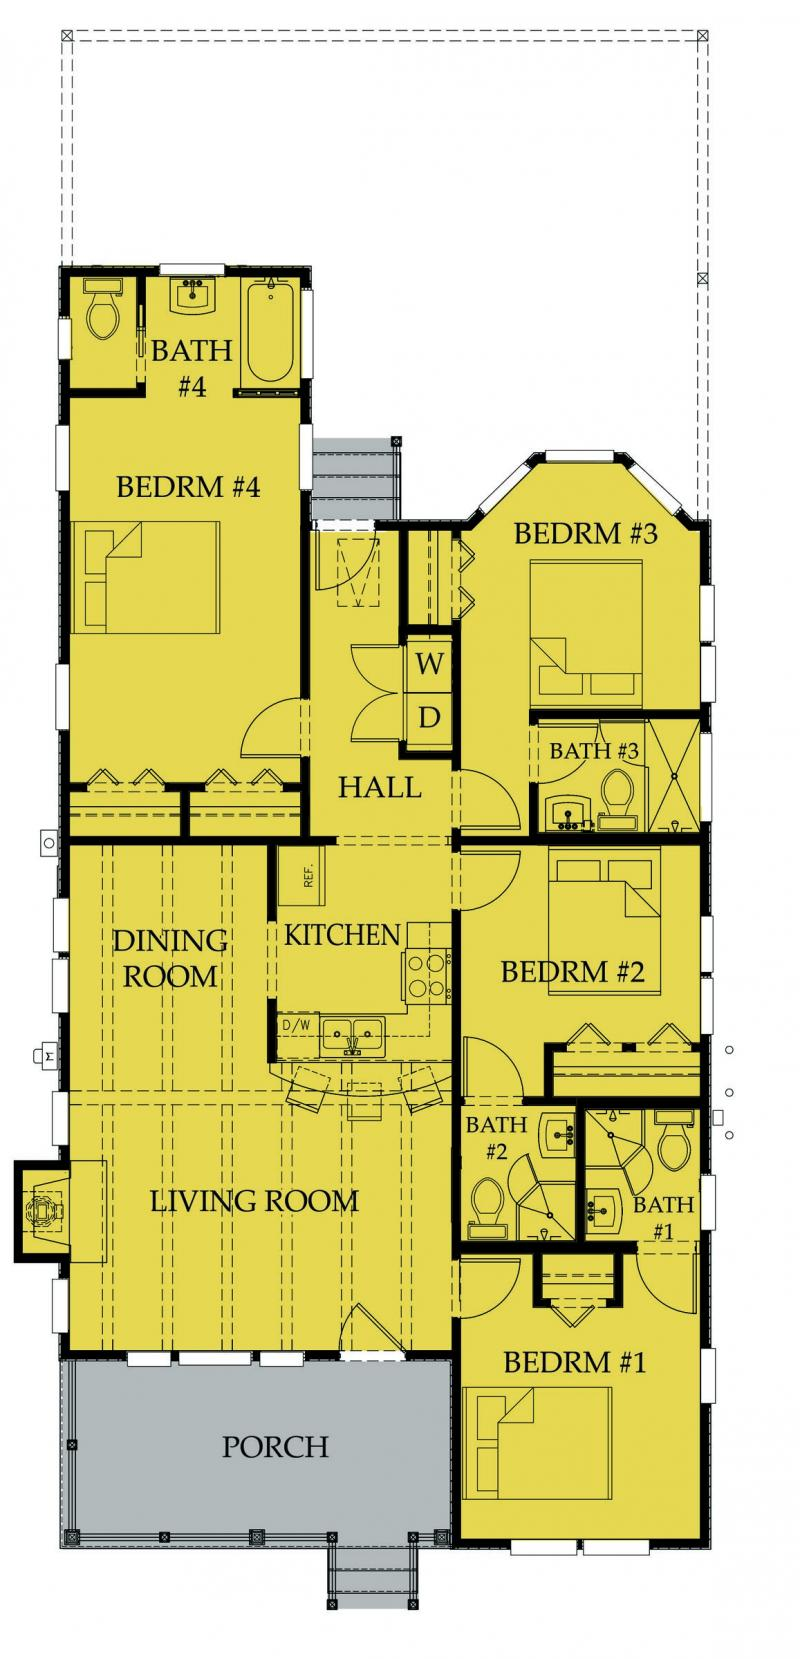 House likewise Reynolds Great Waters likewise Us Afghanistan Turmoil Wont Change Us War Plan further 18502641 together with Concrete flat roof house plans. on oconee house plan